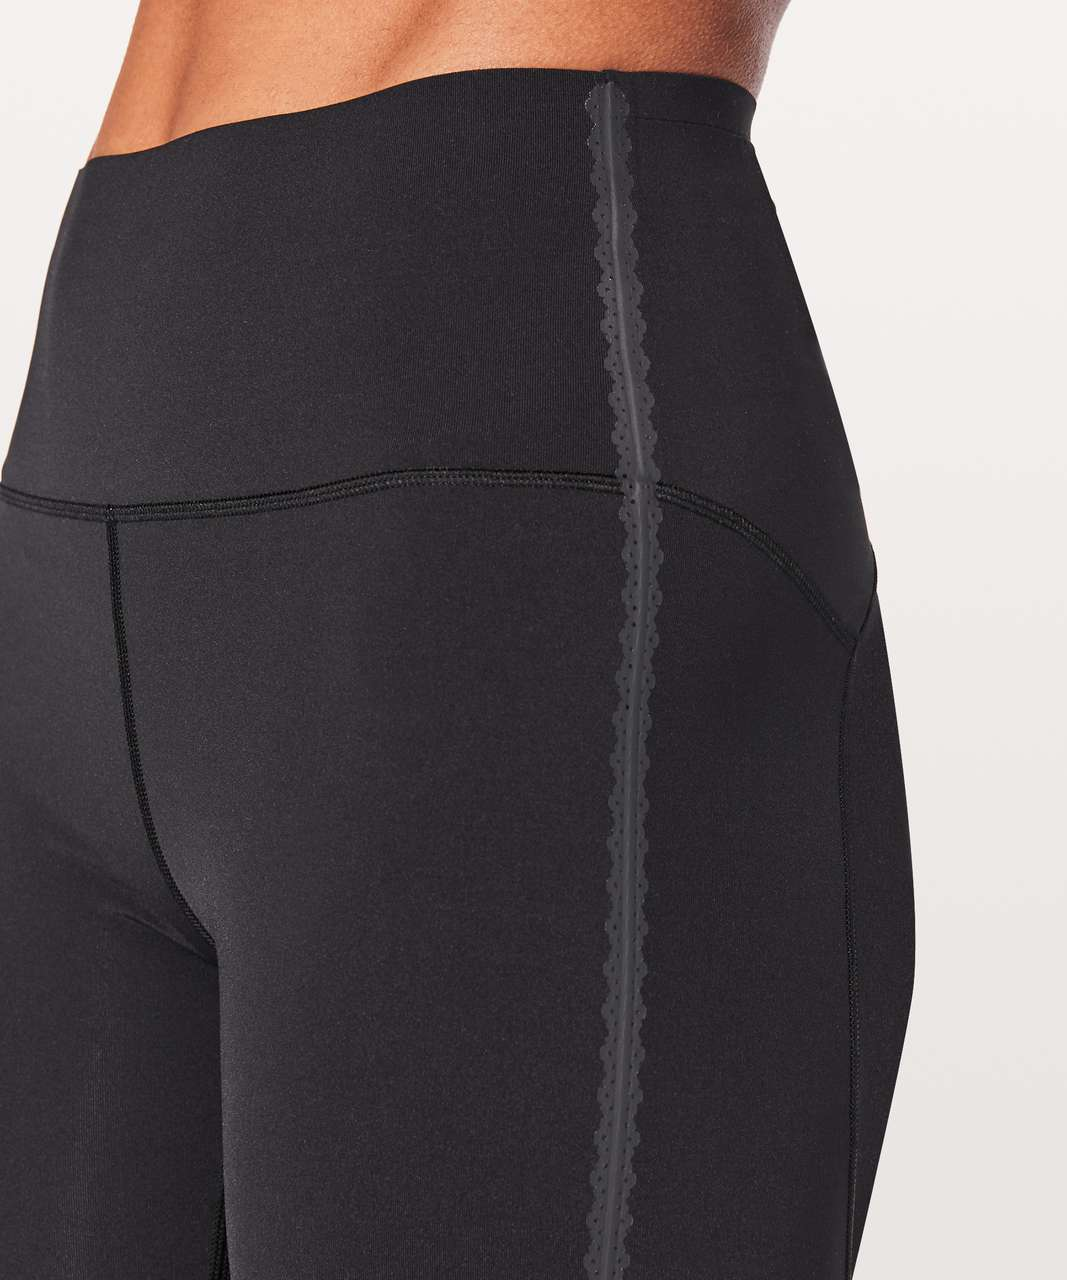 "Lululemon Stop Drop & Squat Tight 28"" - Black"